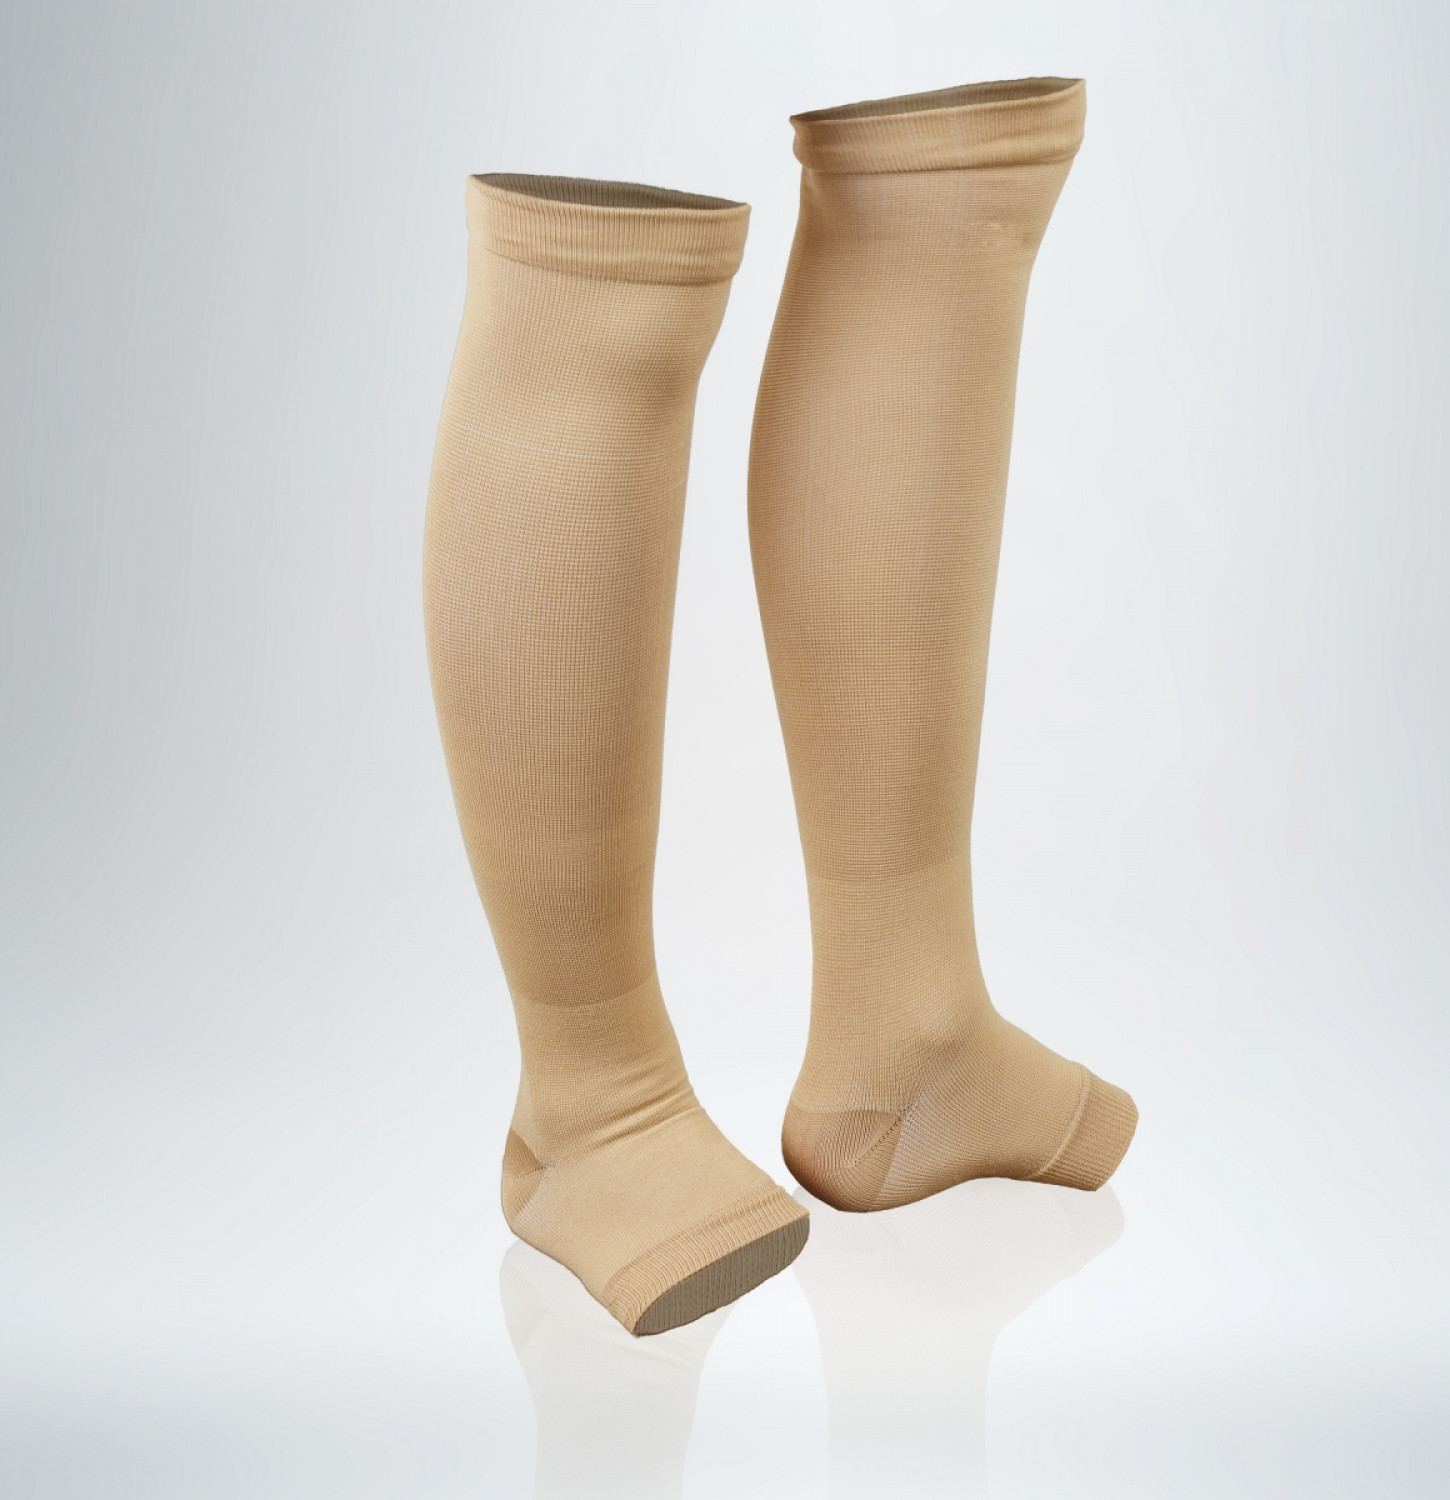 Antibacterial compression stockings